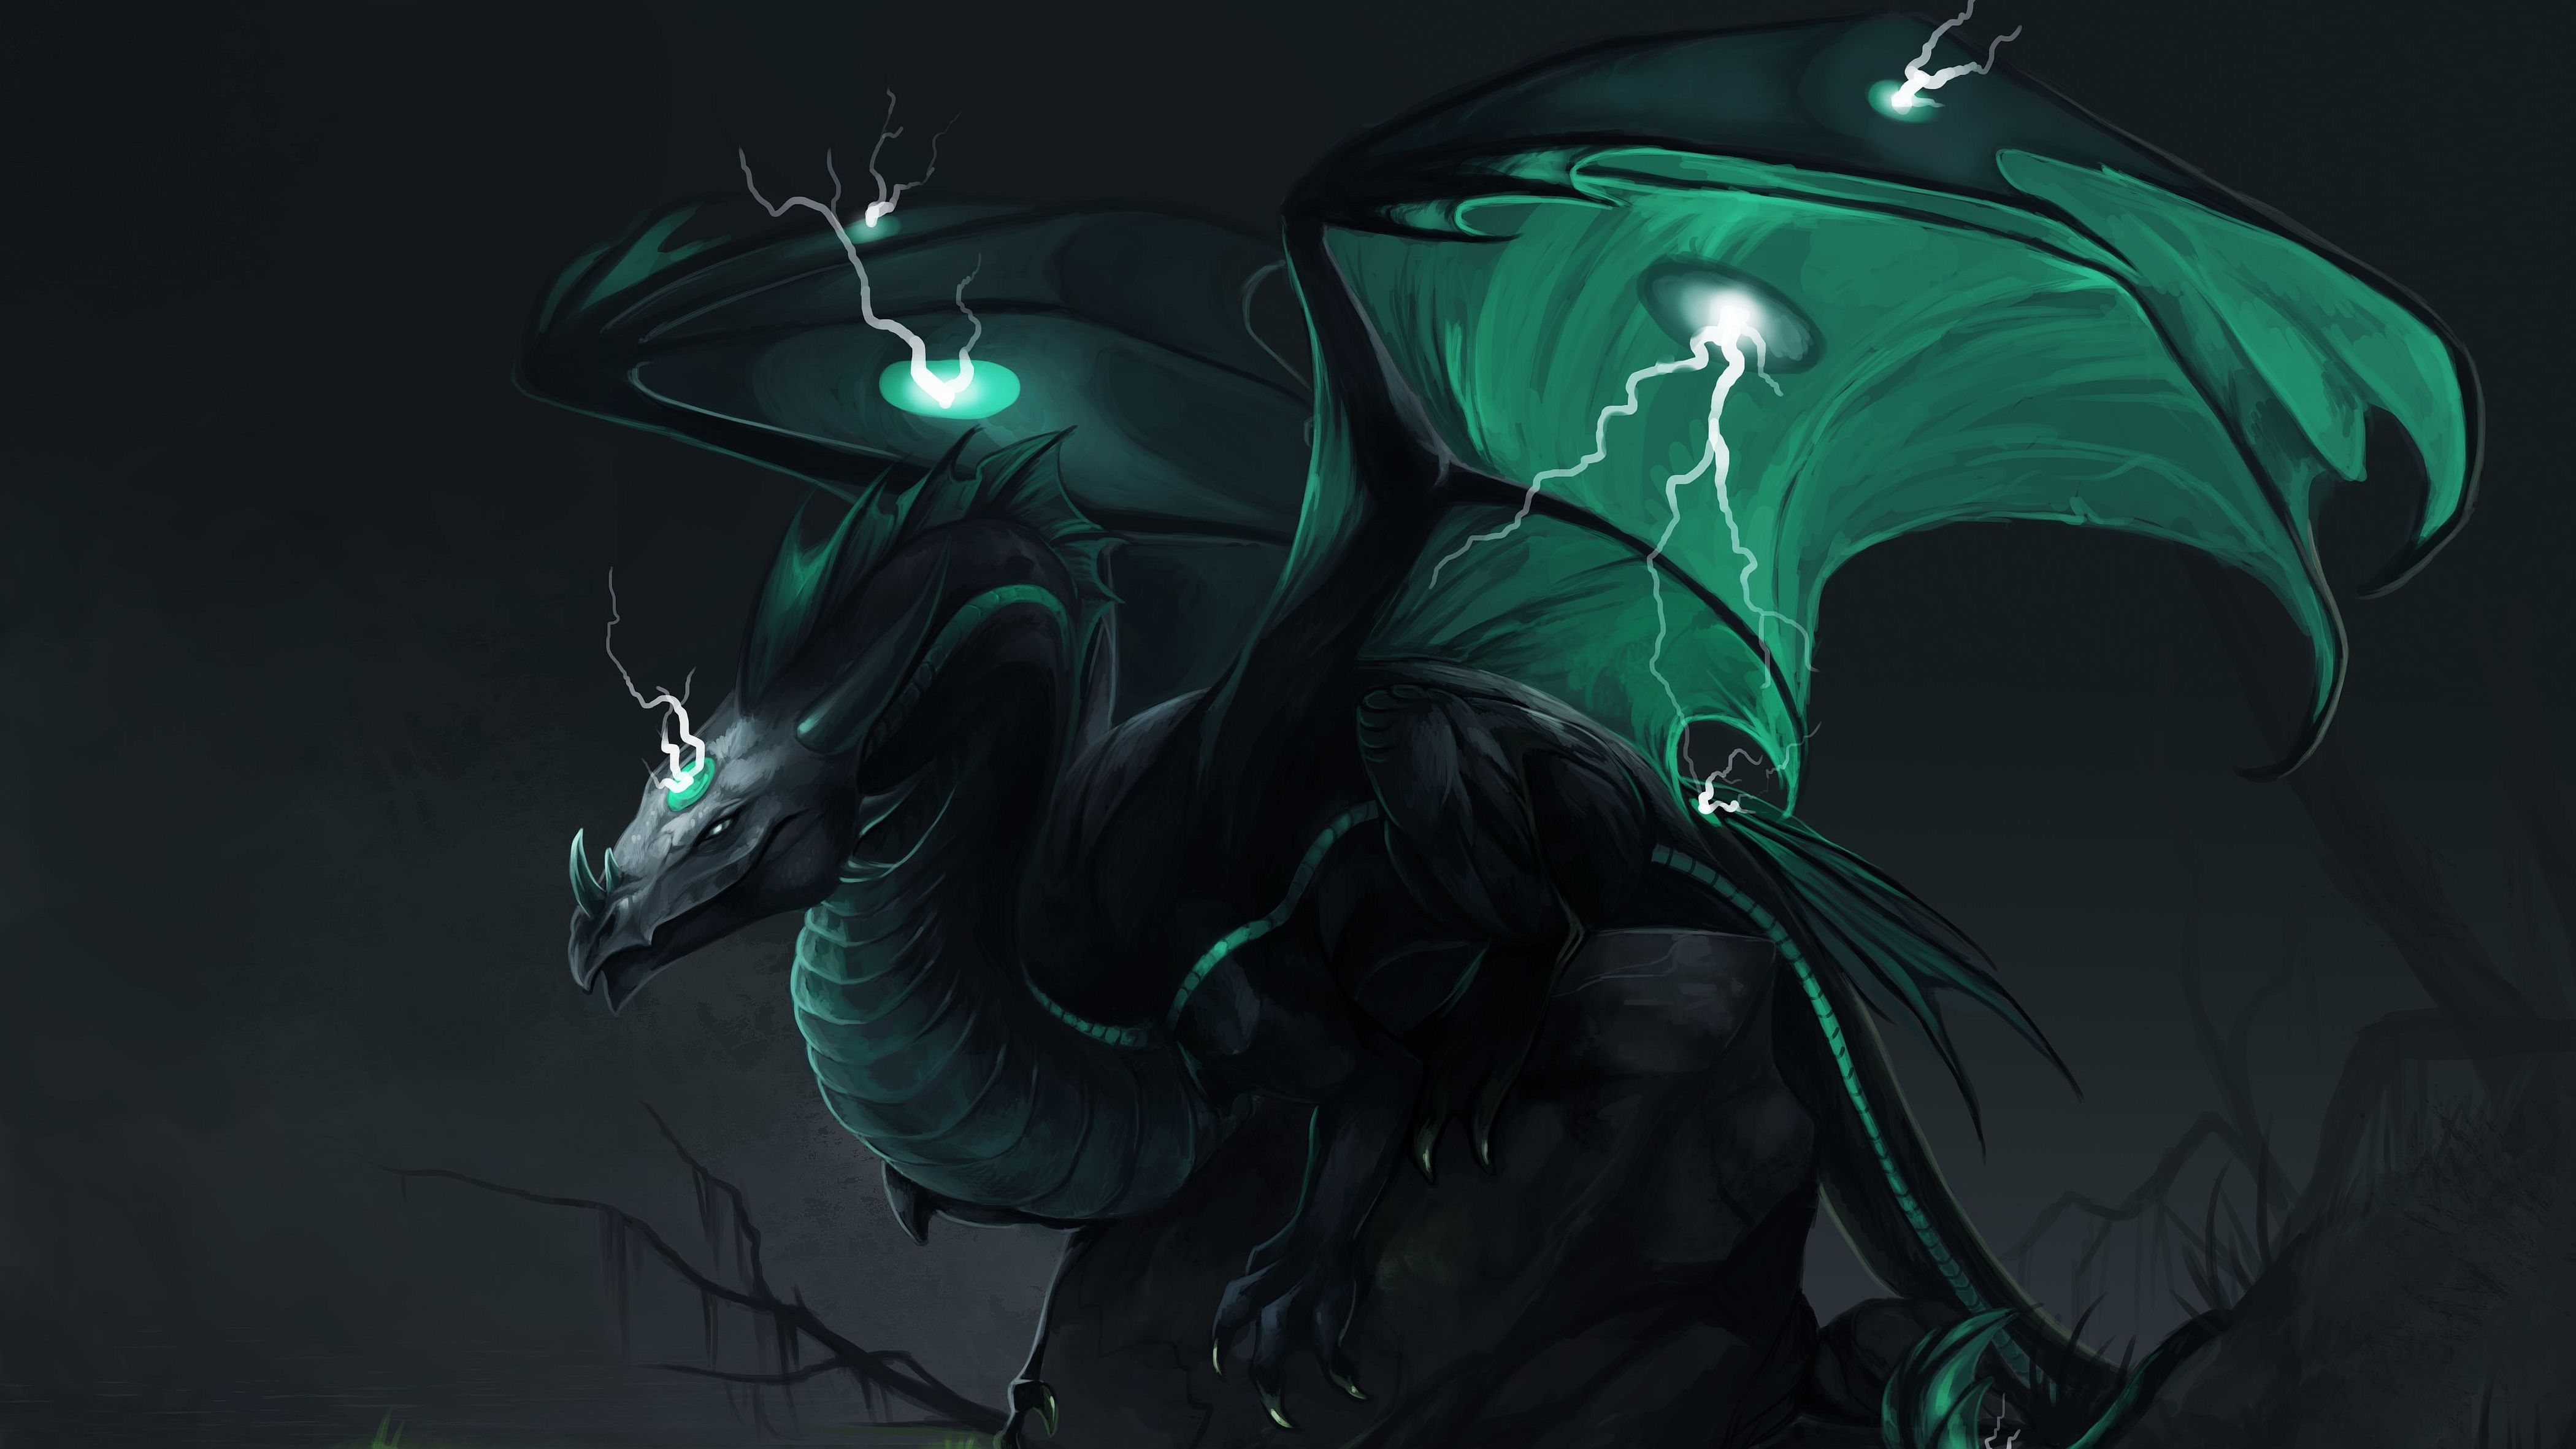 Fantasy Dragon Lightning Dark Fantasy Wallpaper Sarkanyok